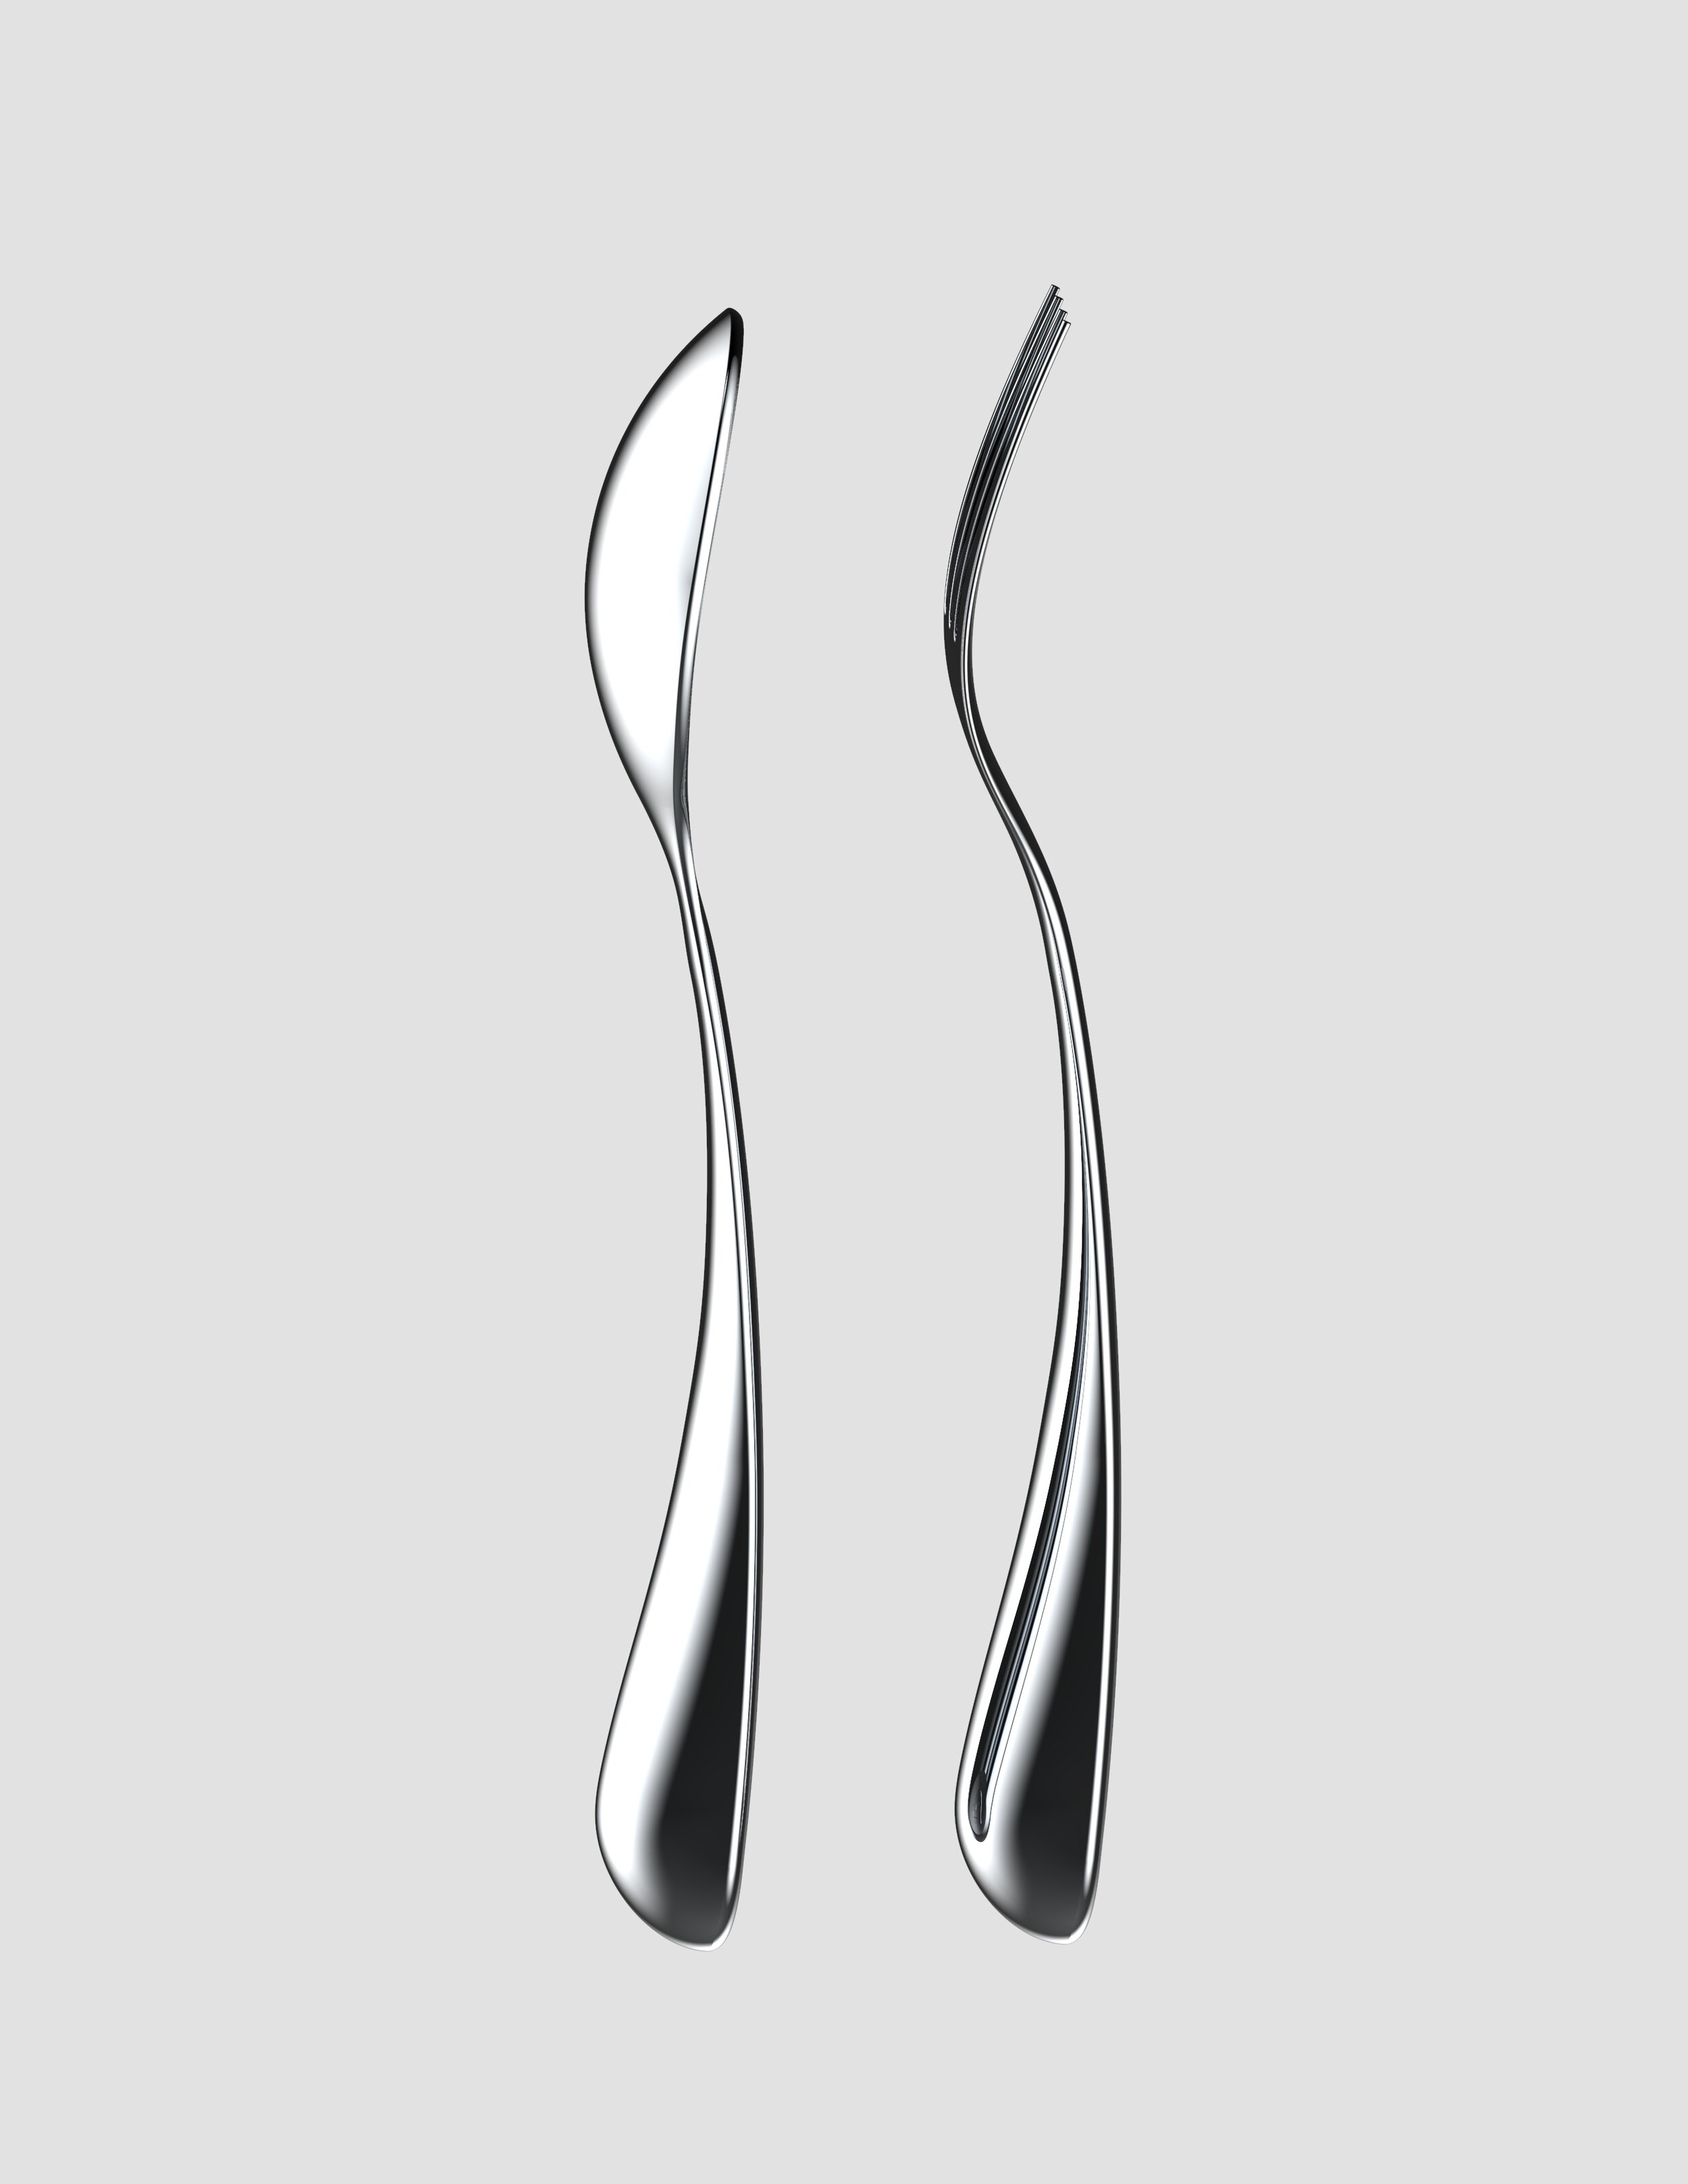 SS Fork knife and spoon - Knife 4-1 a.122.jpg